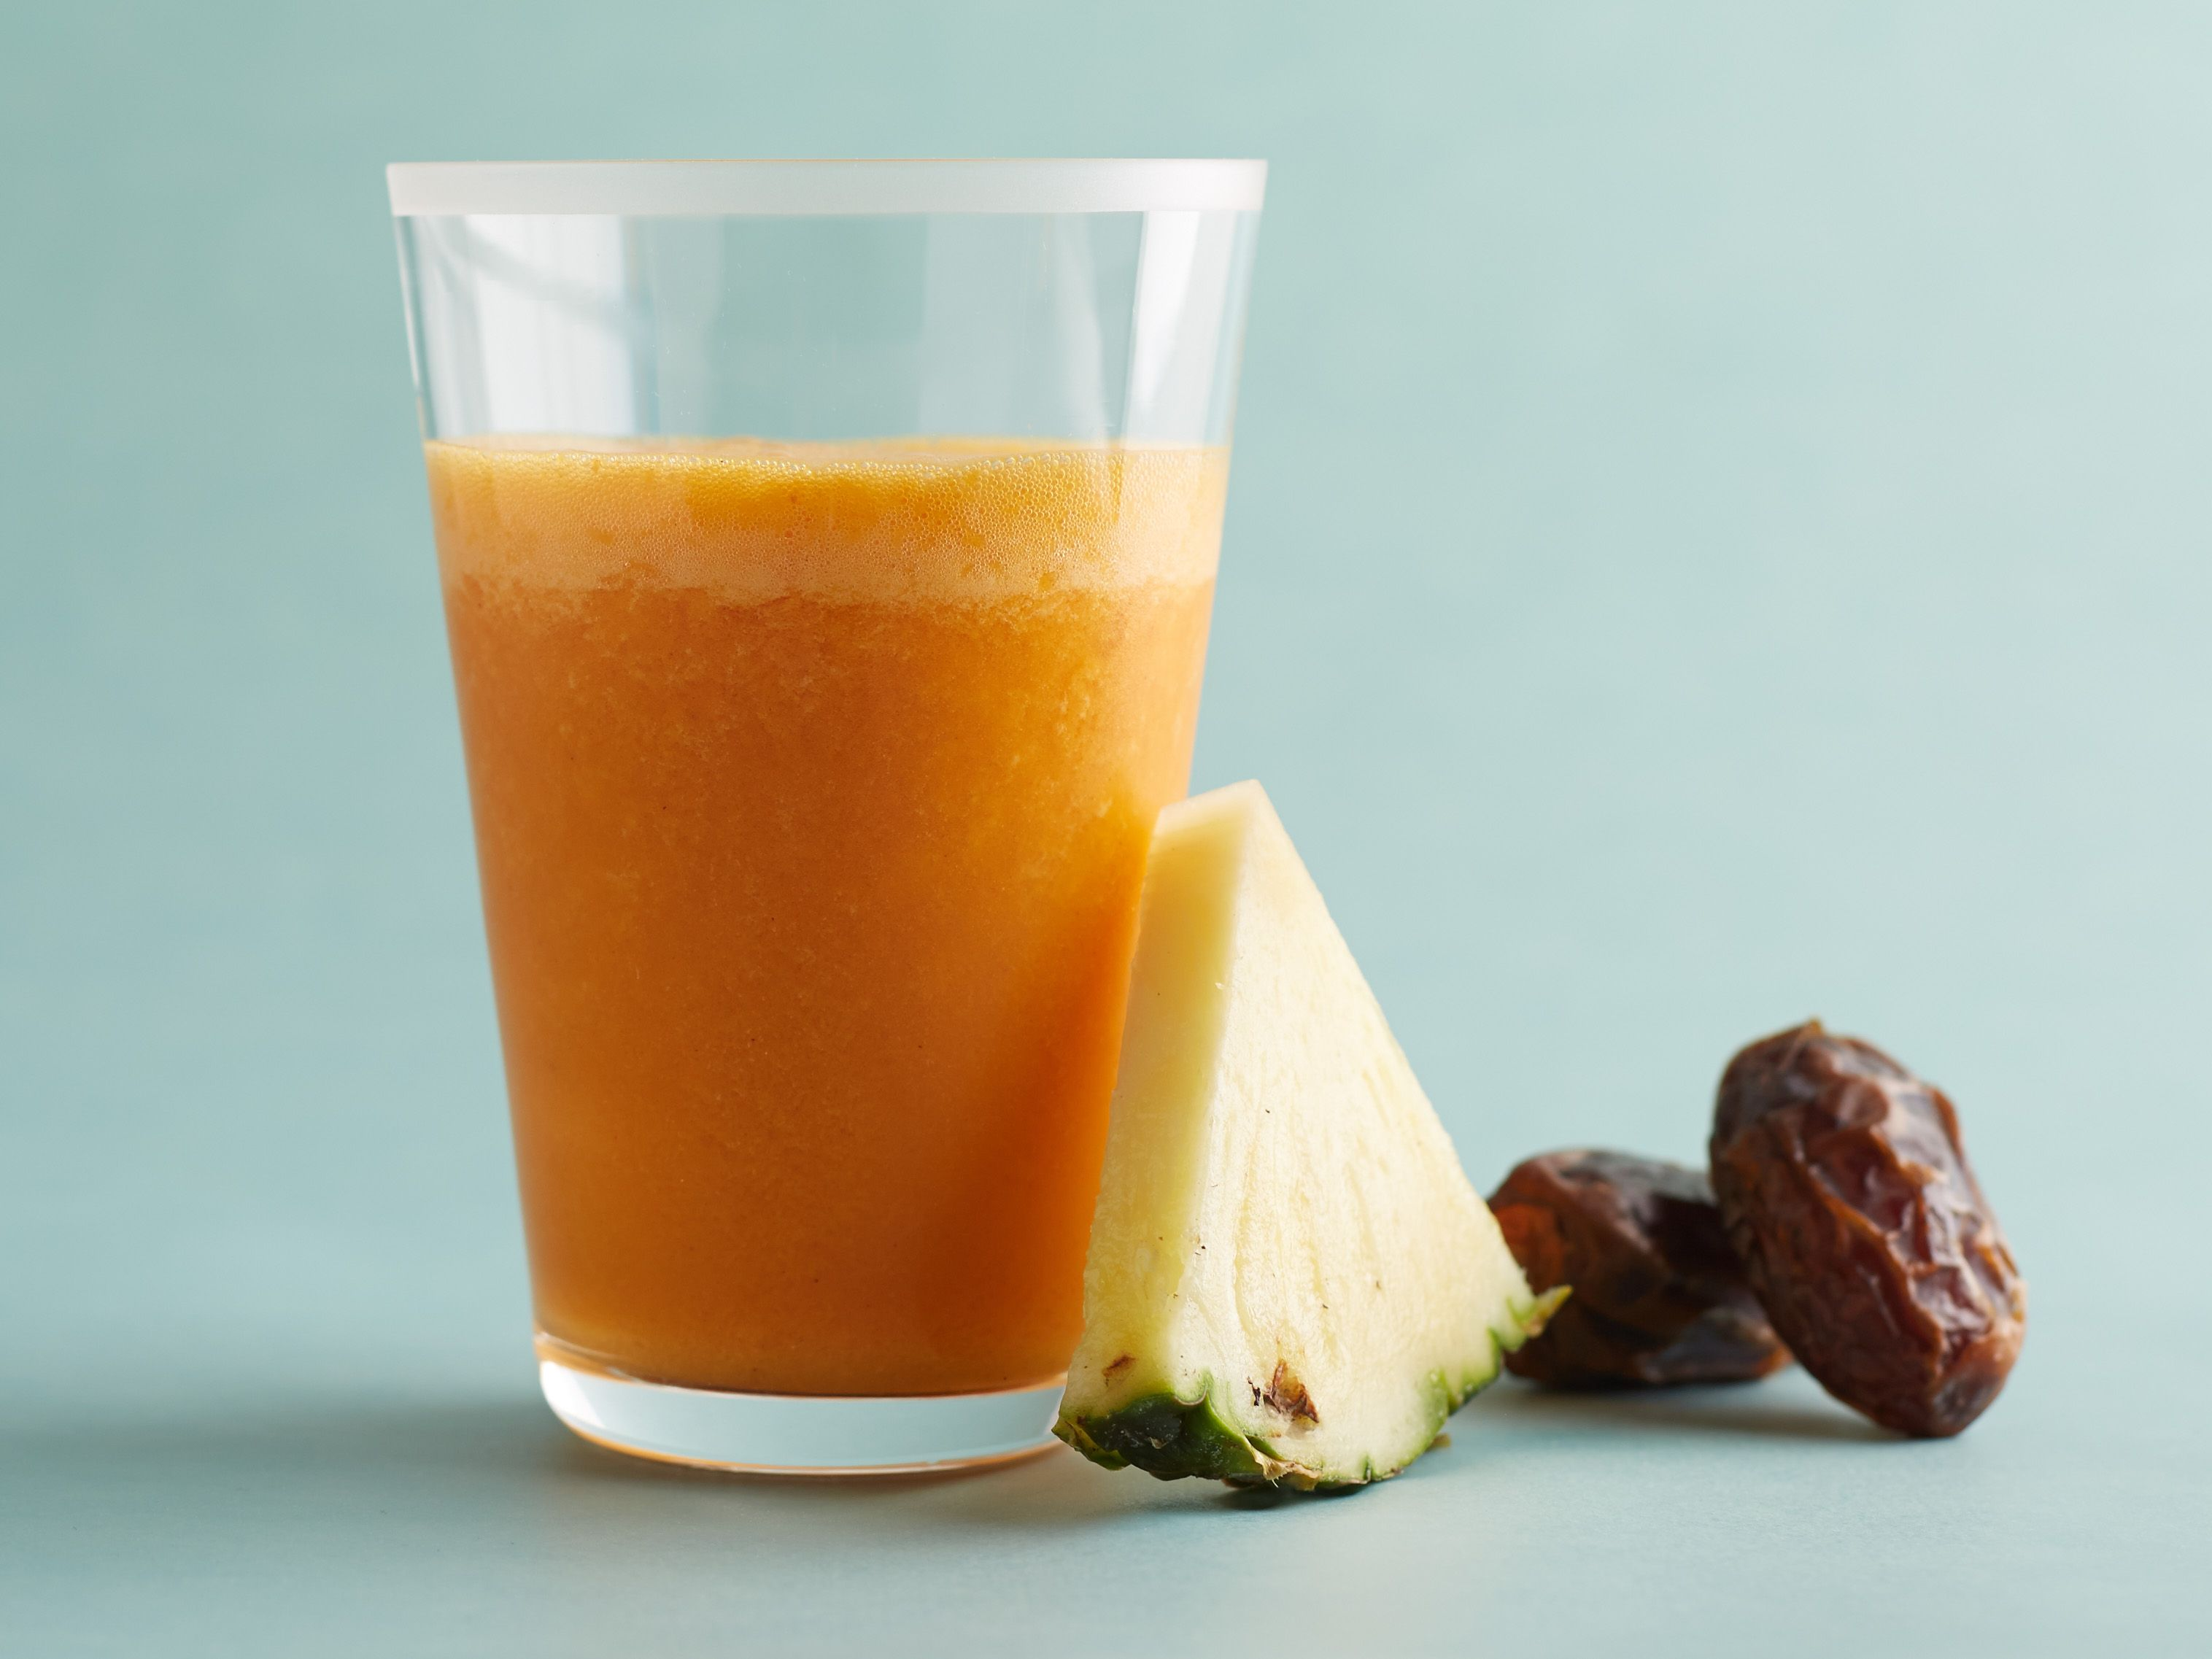 Carrot-Pineapple Smoothie: The combination of beta-carotene packed carrots and vitamin-rich pineapple is a delicious and healthy one in this refreshing smoothie. Freezing carrot juice cuts out adding regular ice cubes, and we love using dried dates as a natural sweetener.